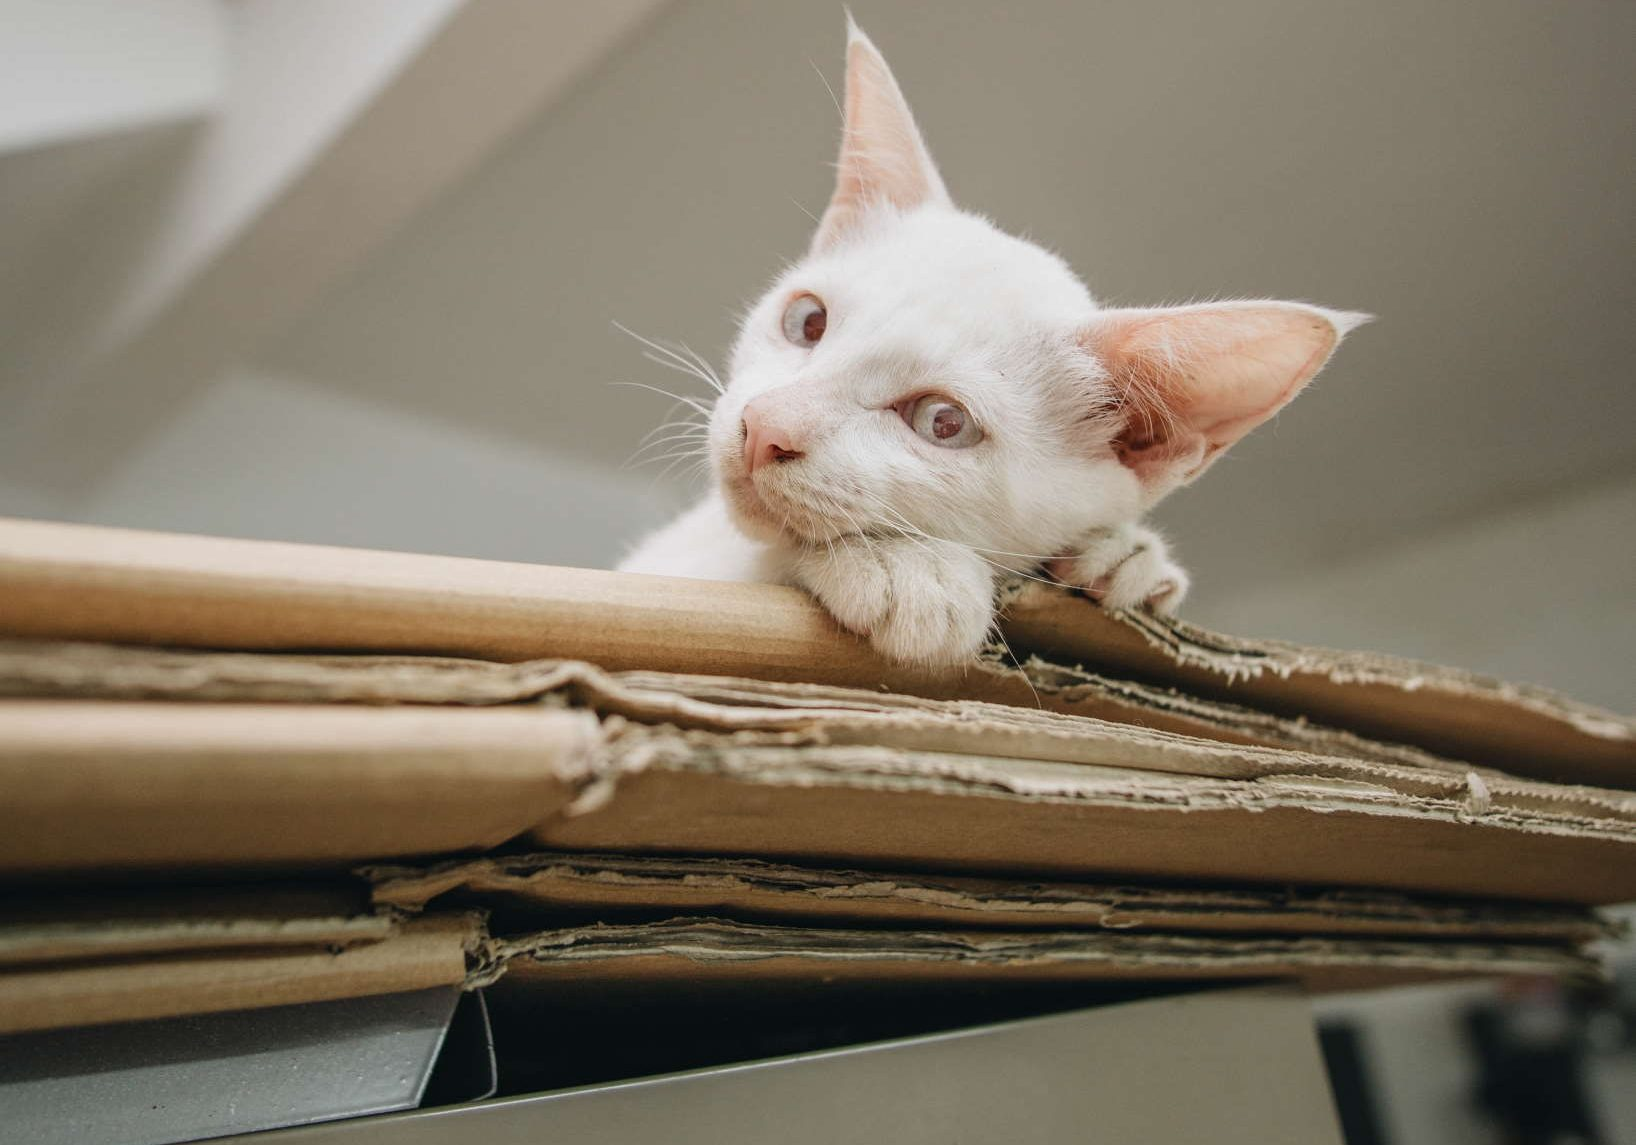 The 6 Best Cardboard Cat Toys and Why Cats Love Them  Image via PxHere under CC0 1.0